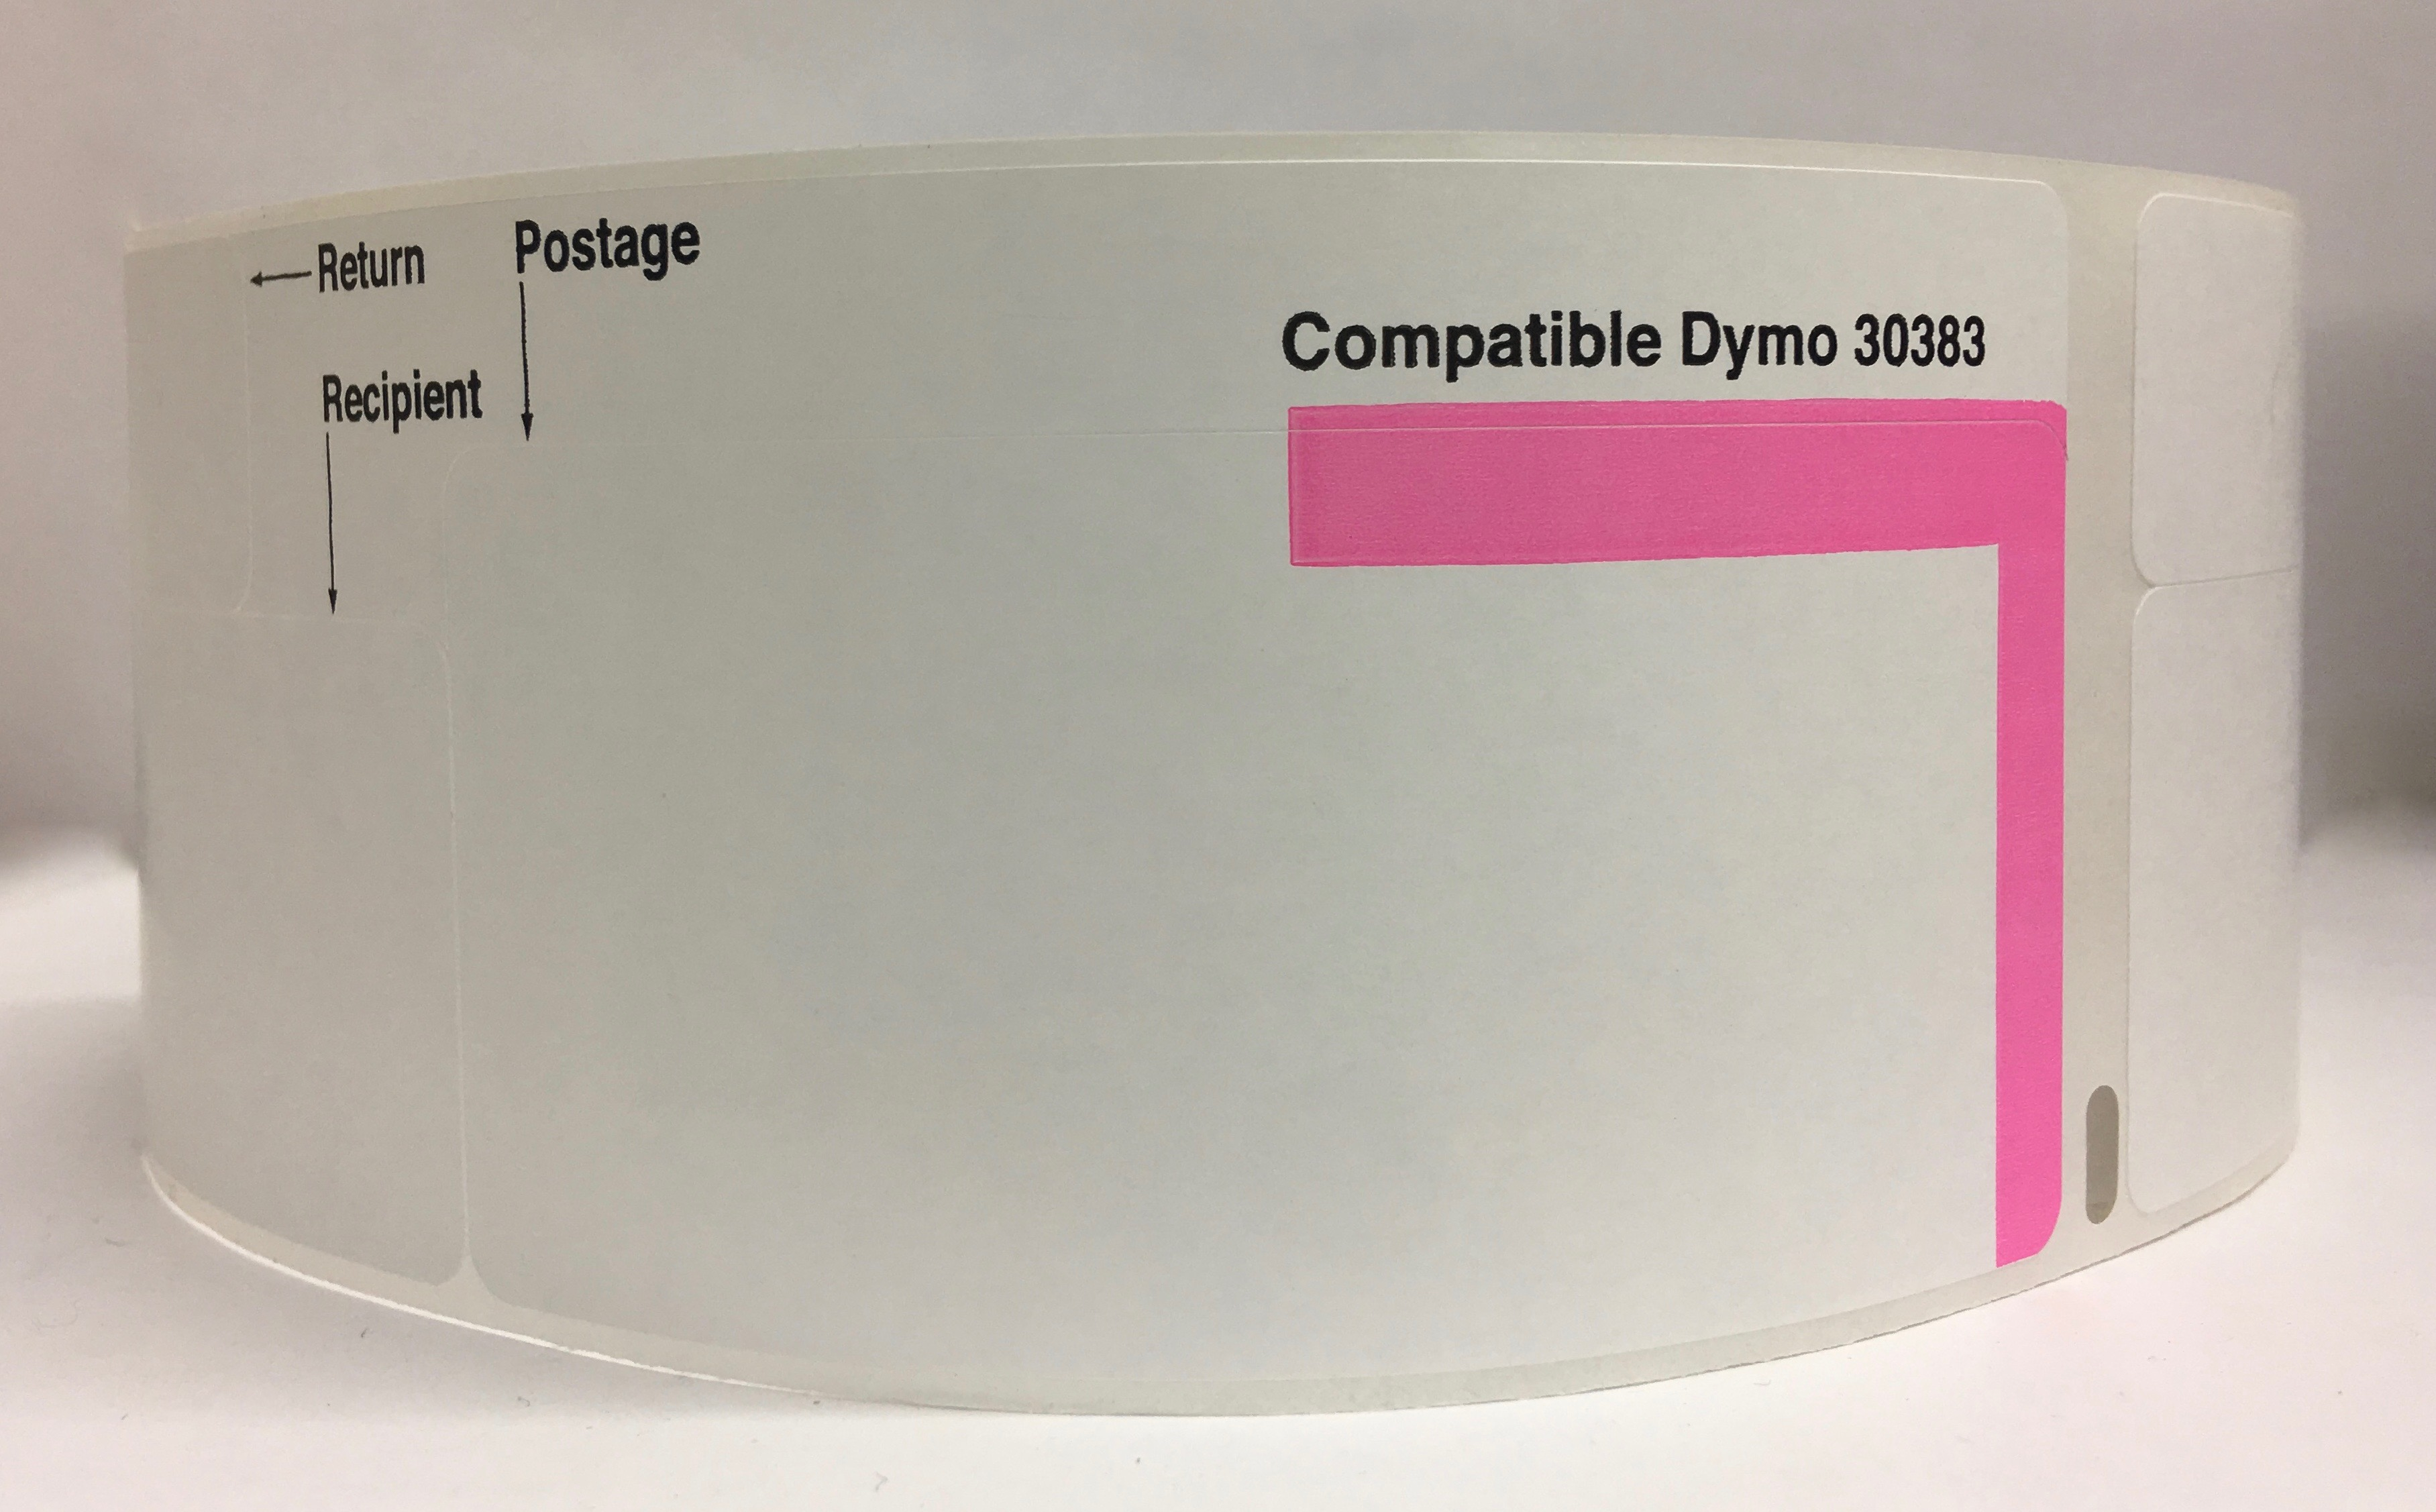 """Dymo Compatible 30383 (3-Part) Shipping Postage Return Address Labels - 2-1/4"""" x 7"""", 150 Labels Per Roll"""